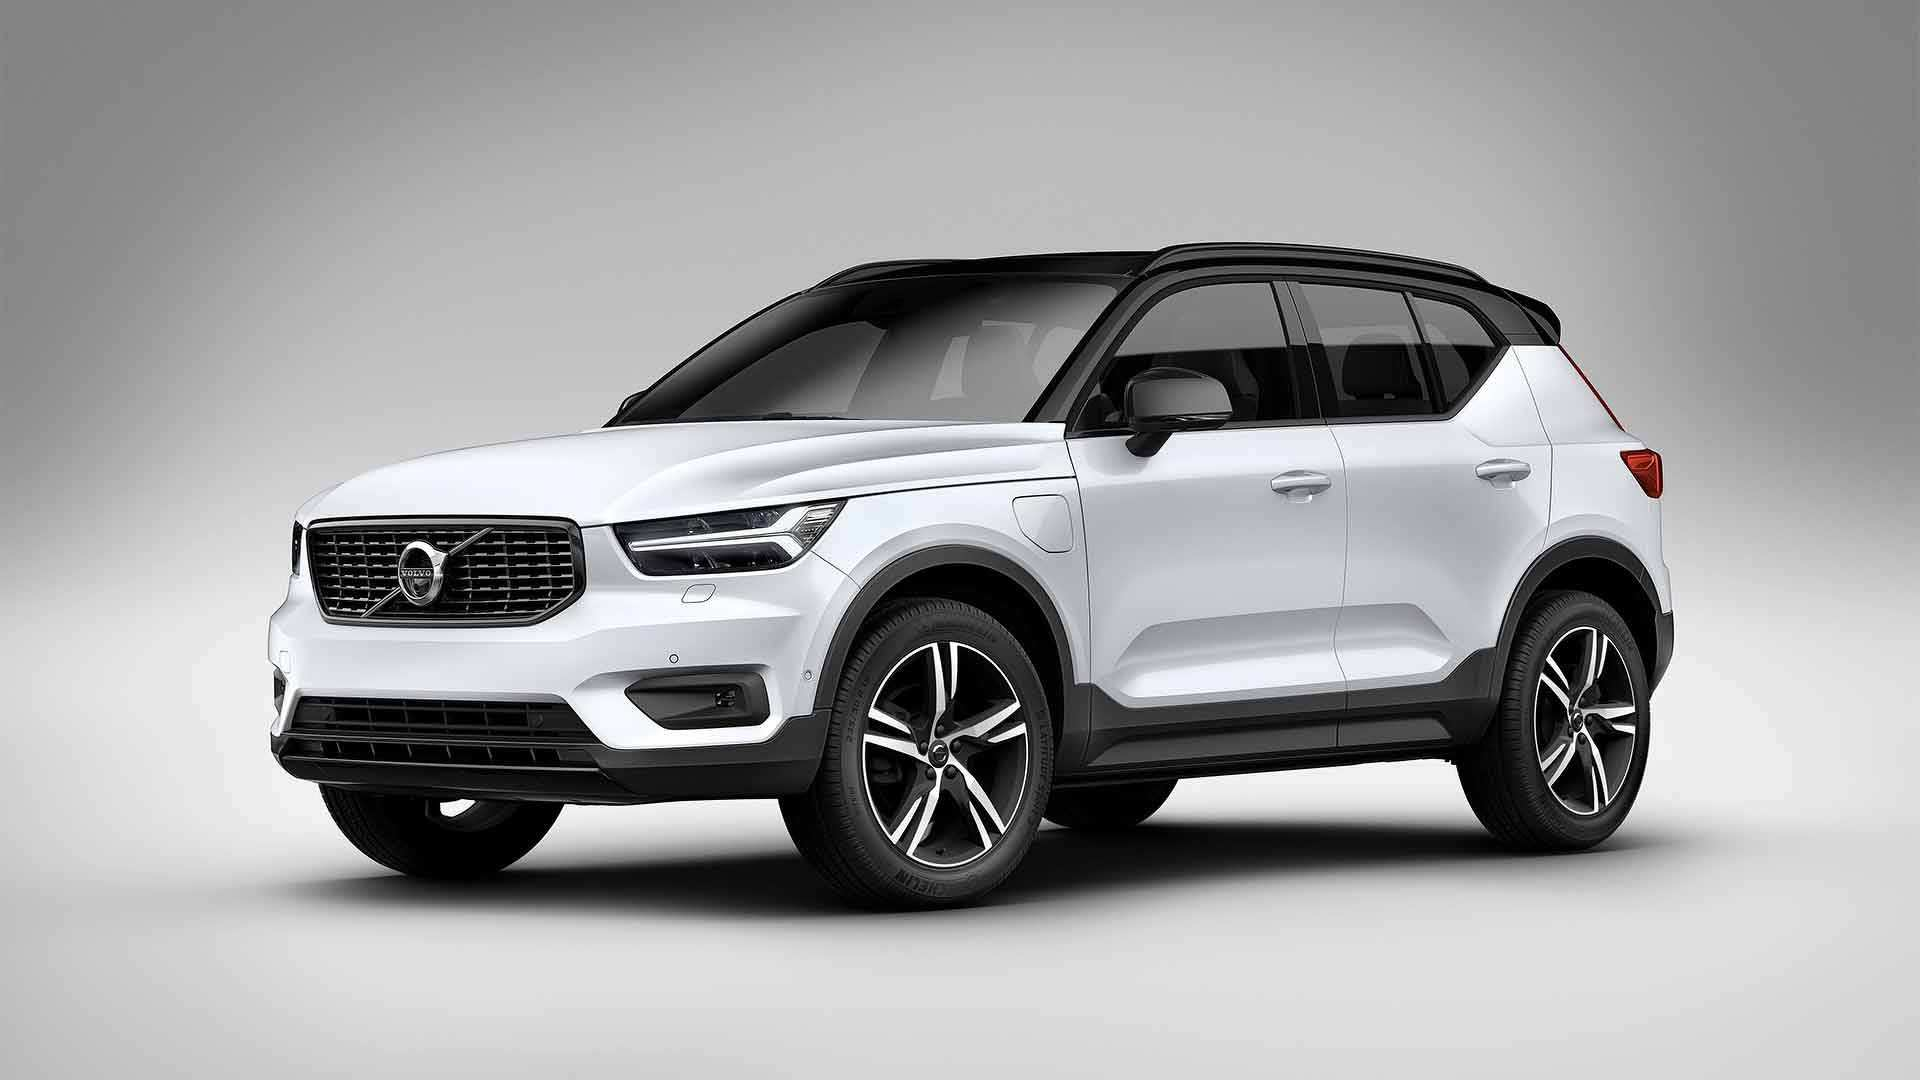 70 New Volvo To Go Electric By 2019 Exterior